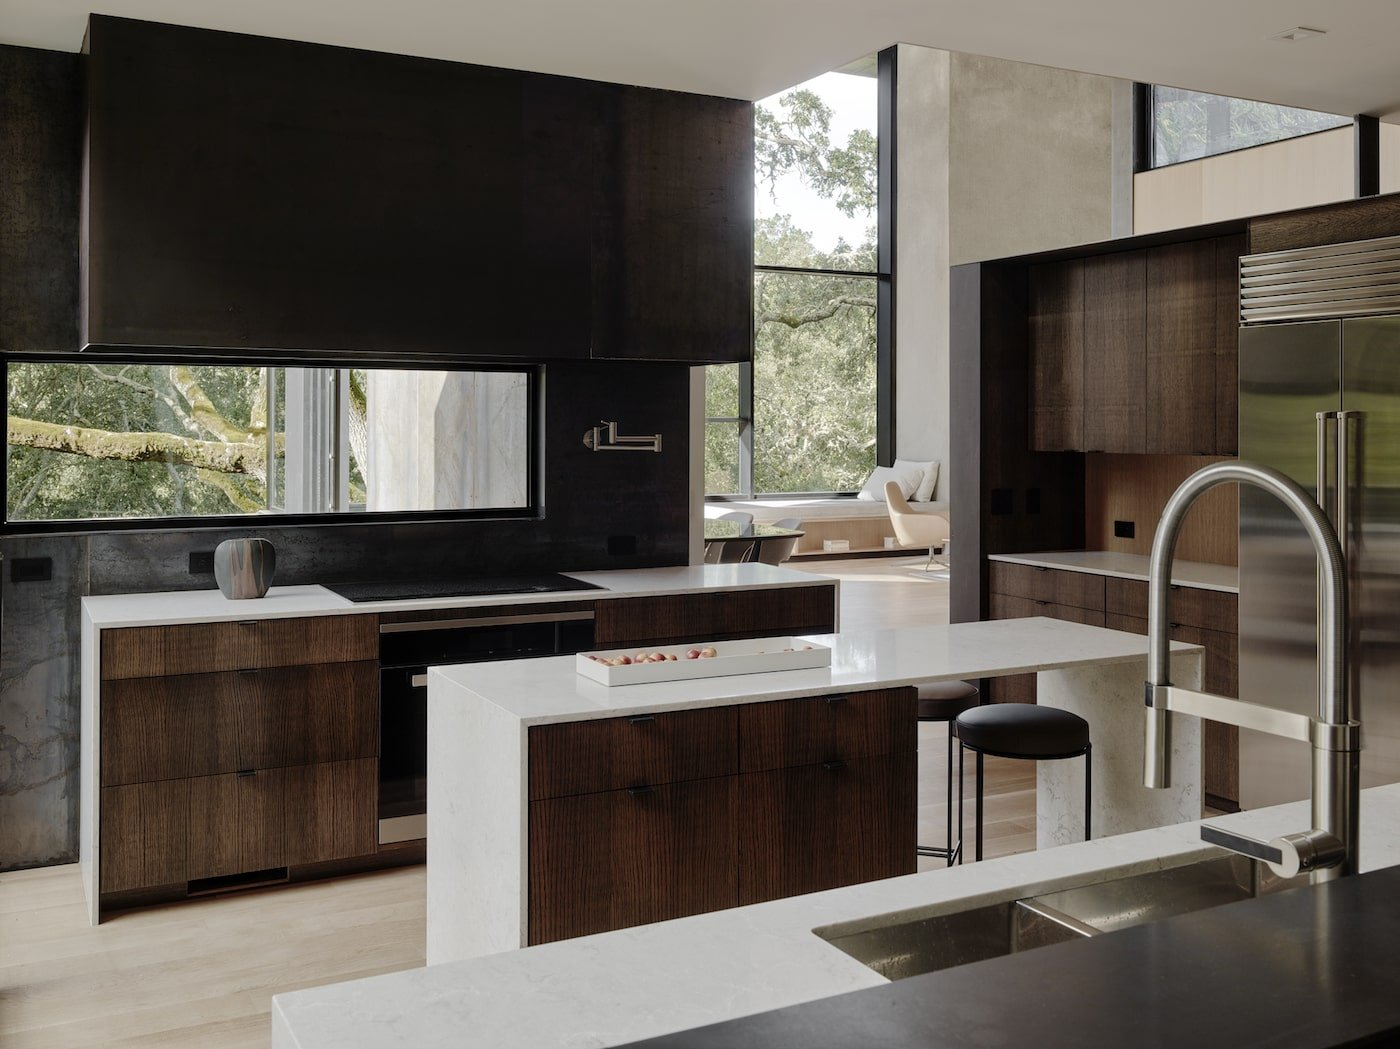 Kitchen with timber joinery and stone bench top in net-zero home